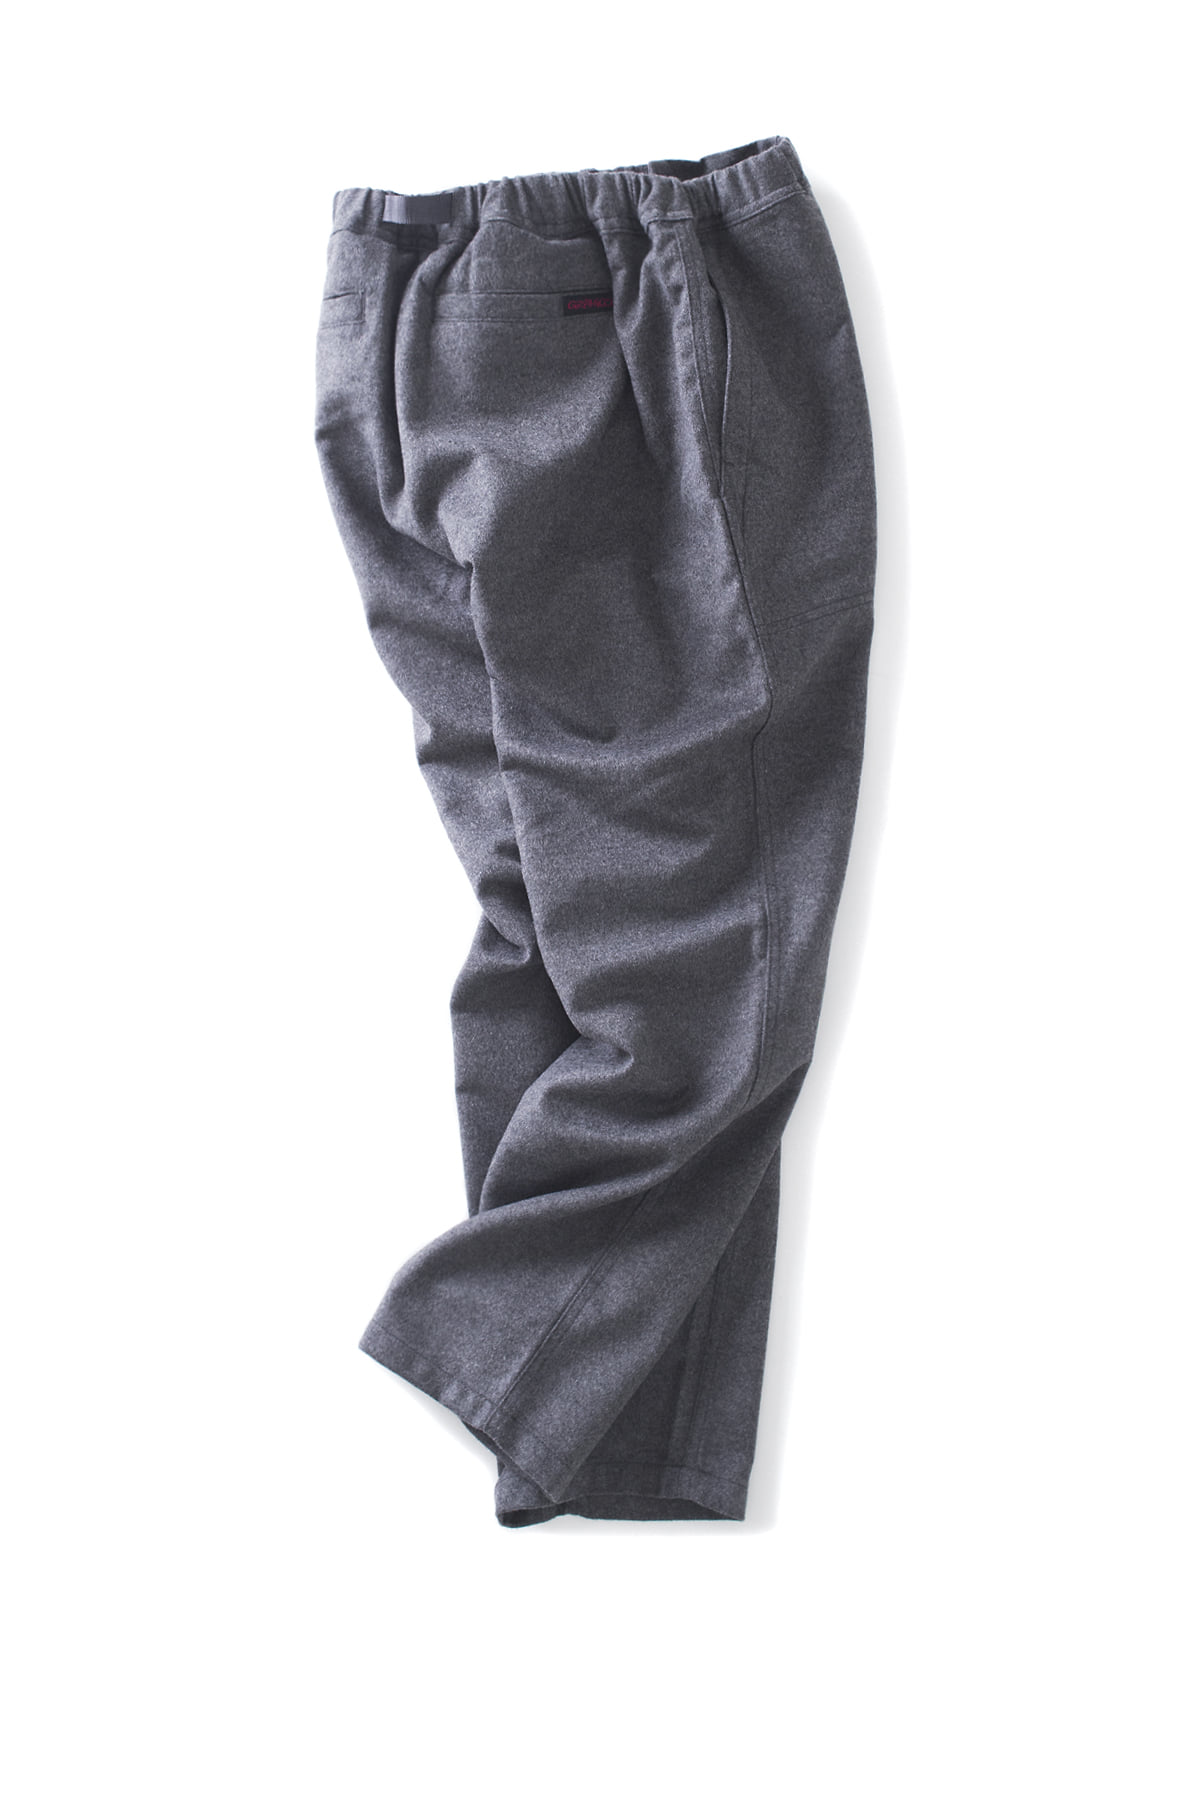 Gramicci : Wool Loose Tapered Pants (Heather Charcoal)